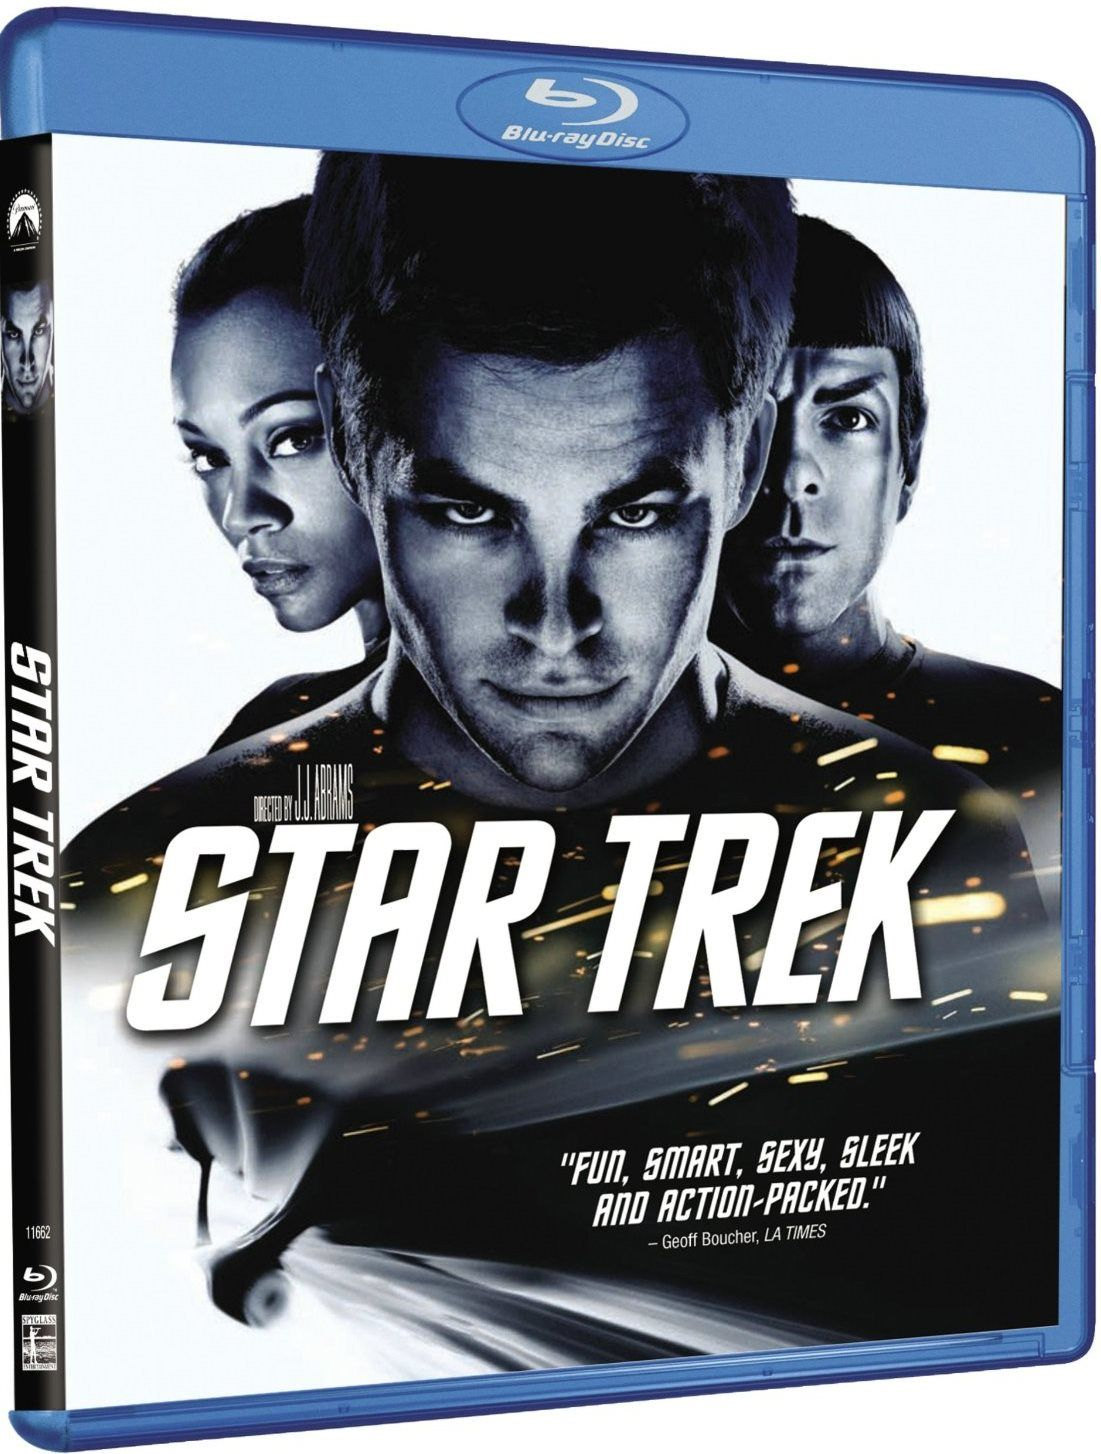 Star Trek 2009 Blu Ray Movie Review Star Trek 2009 Star Trek Movies Watch Star Trek